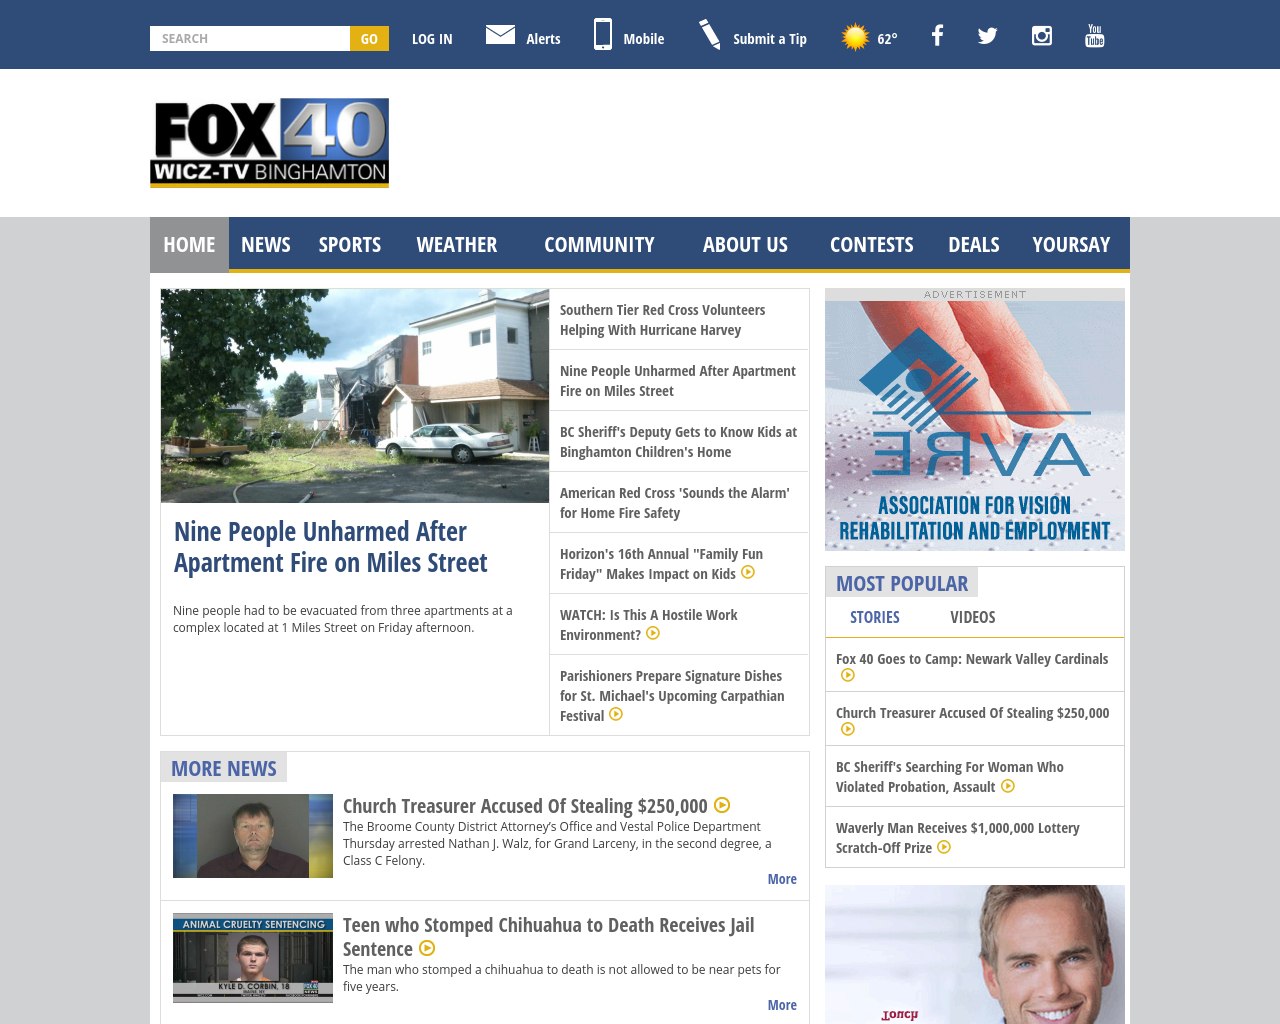 FOX-40-WICZ-.COM-Advertising-Reviews-Pricing